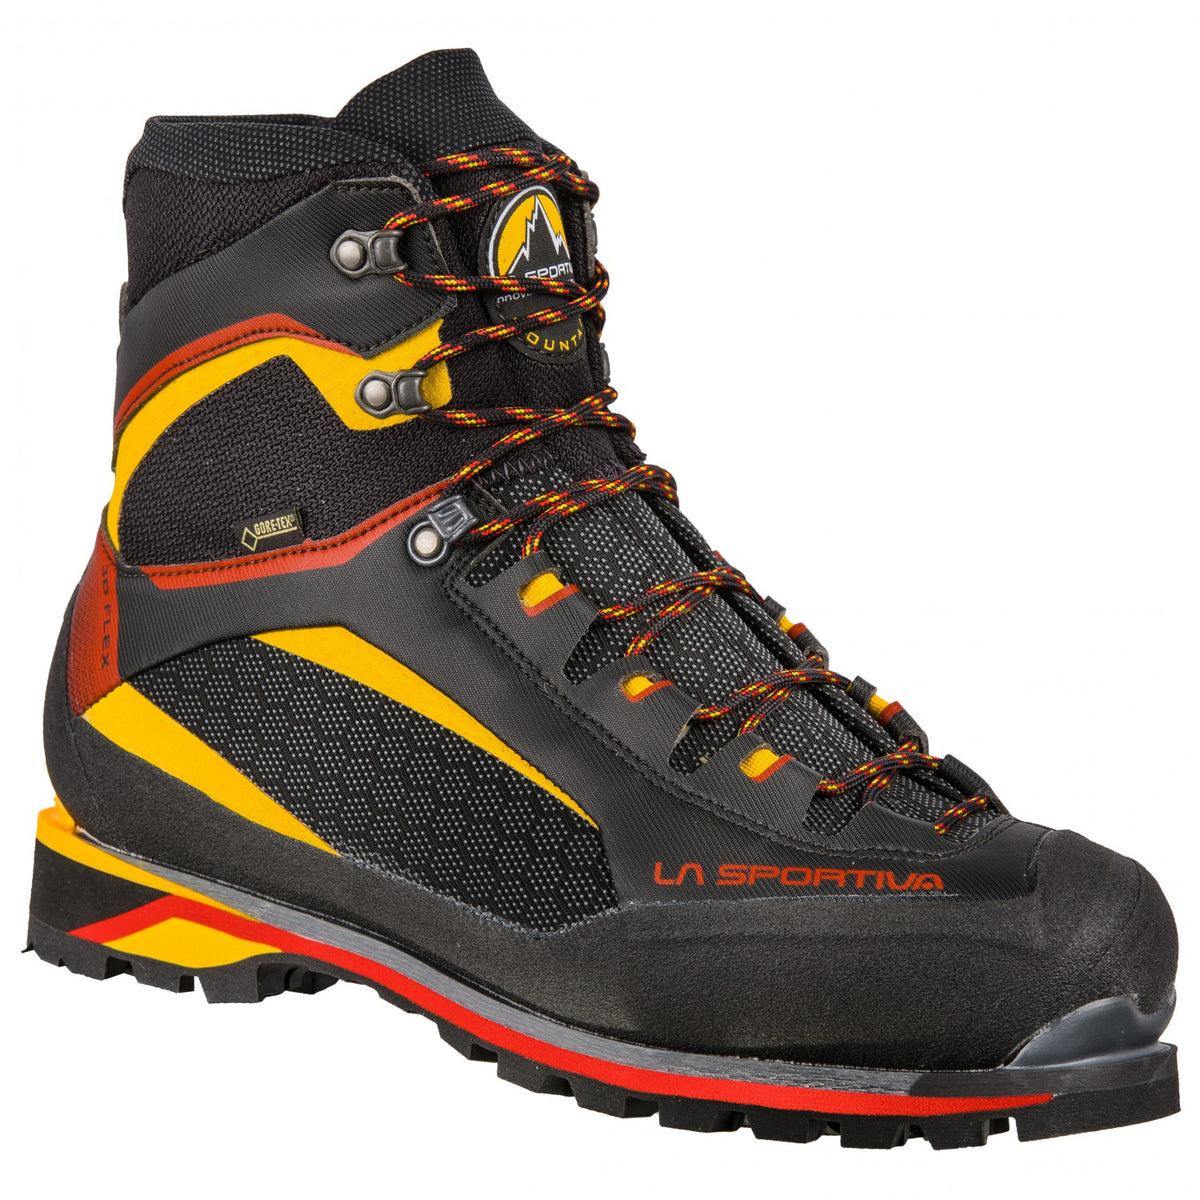 La Sportiva Trango Tower Extreme GTX mountaineering boot, in black, red and yellow colours